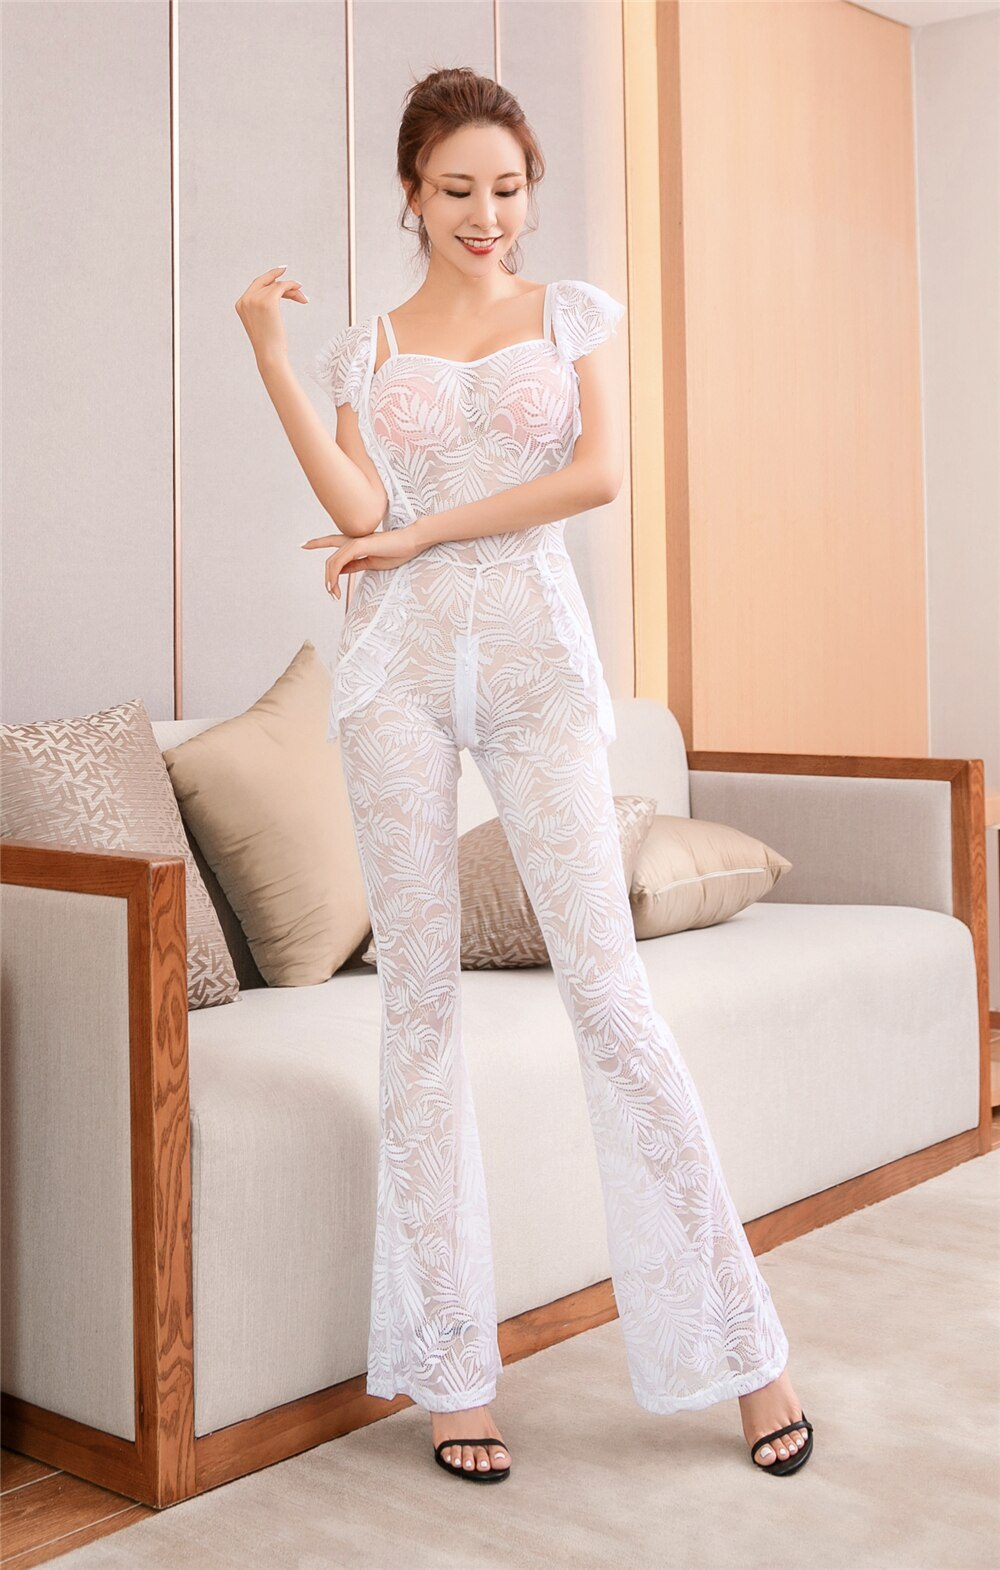 See Through Babydoll - Bodystocking Lace Sleeveless Rompers